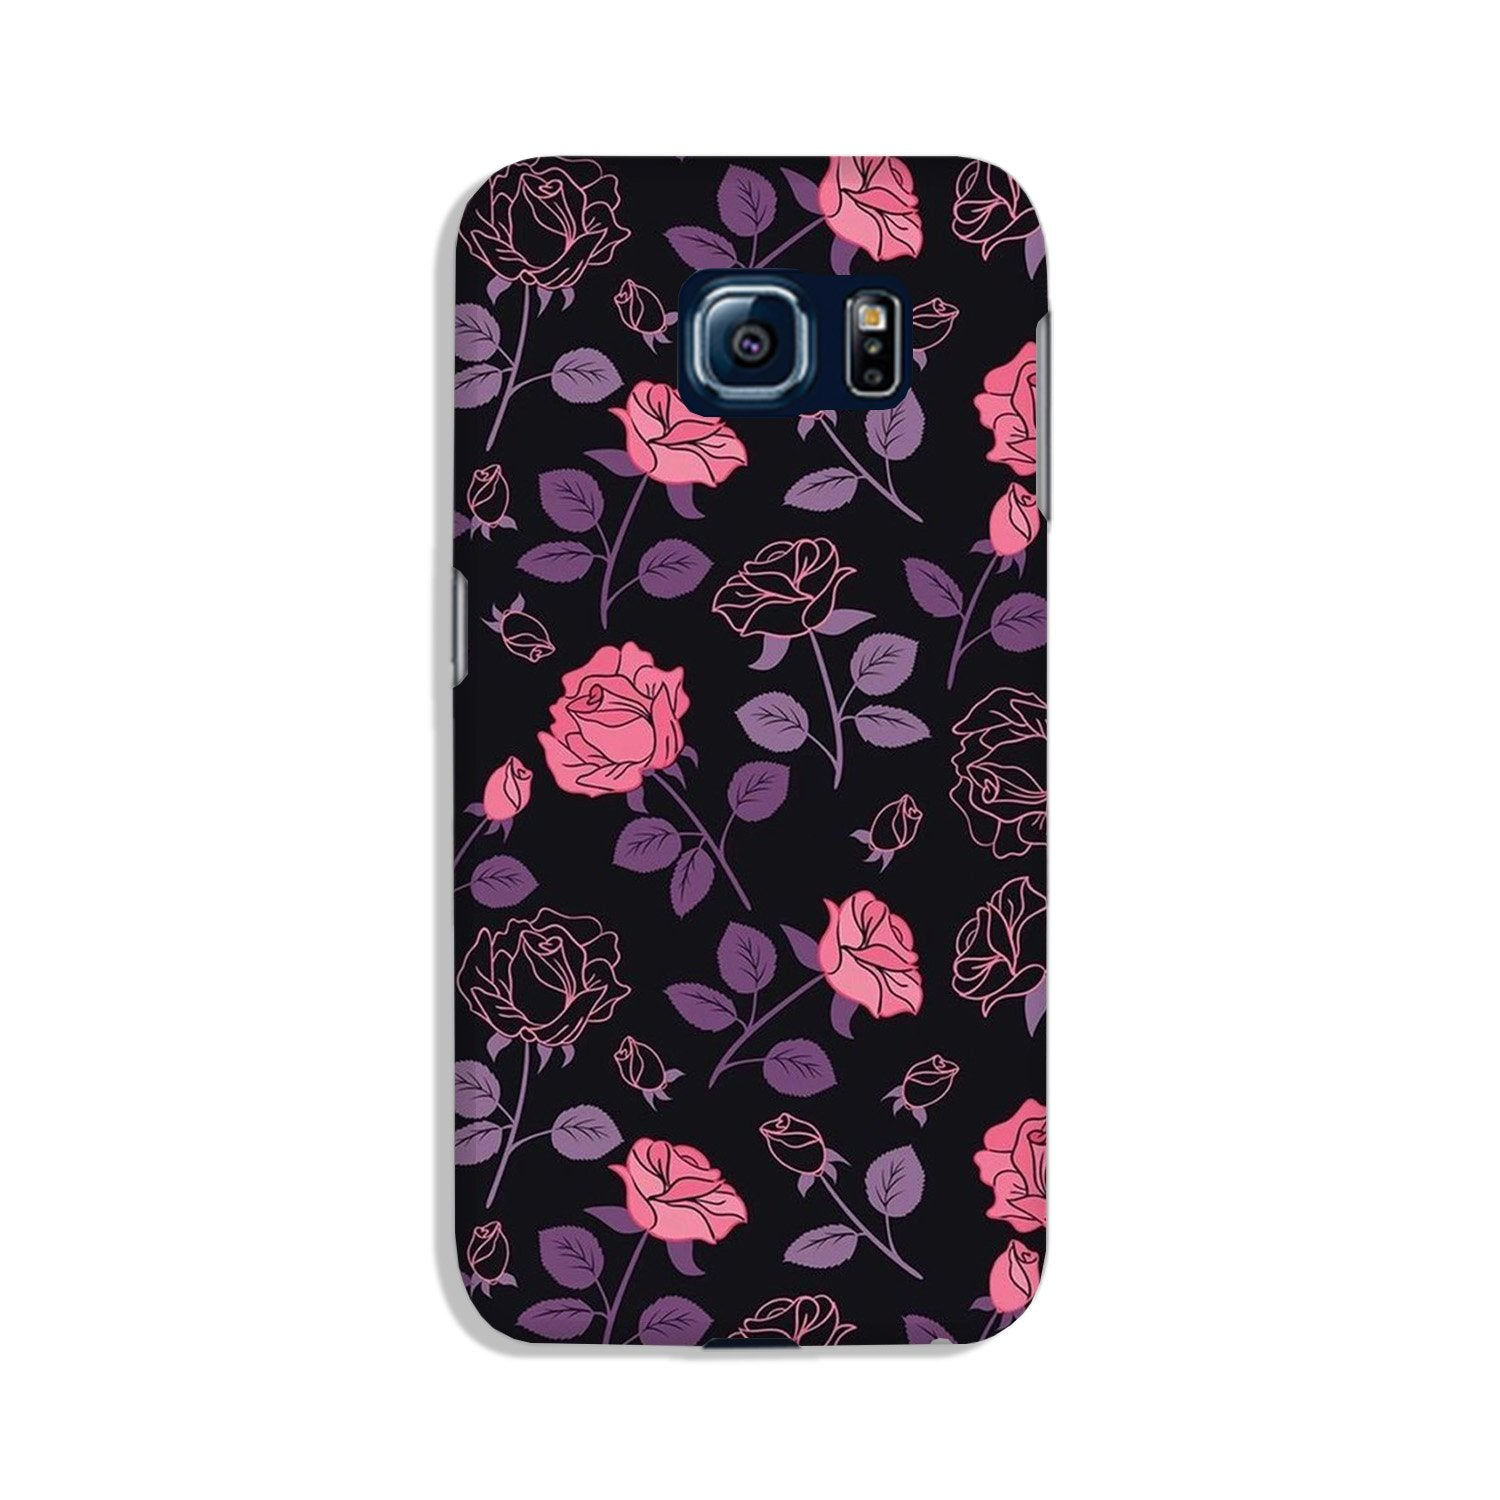 Rose Black Background Case for Galaxy S6